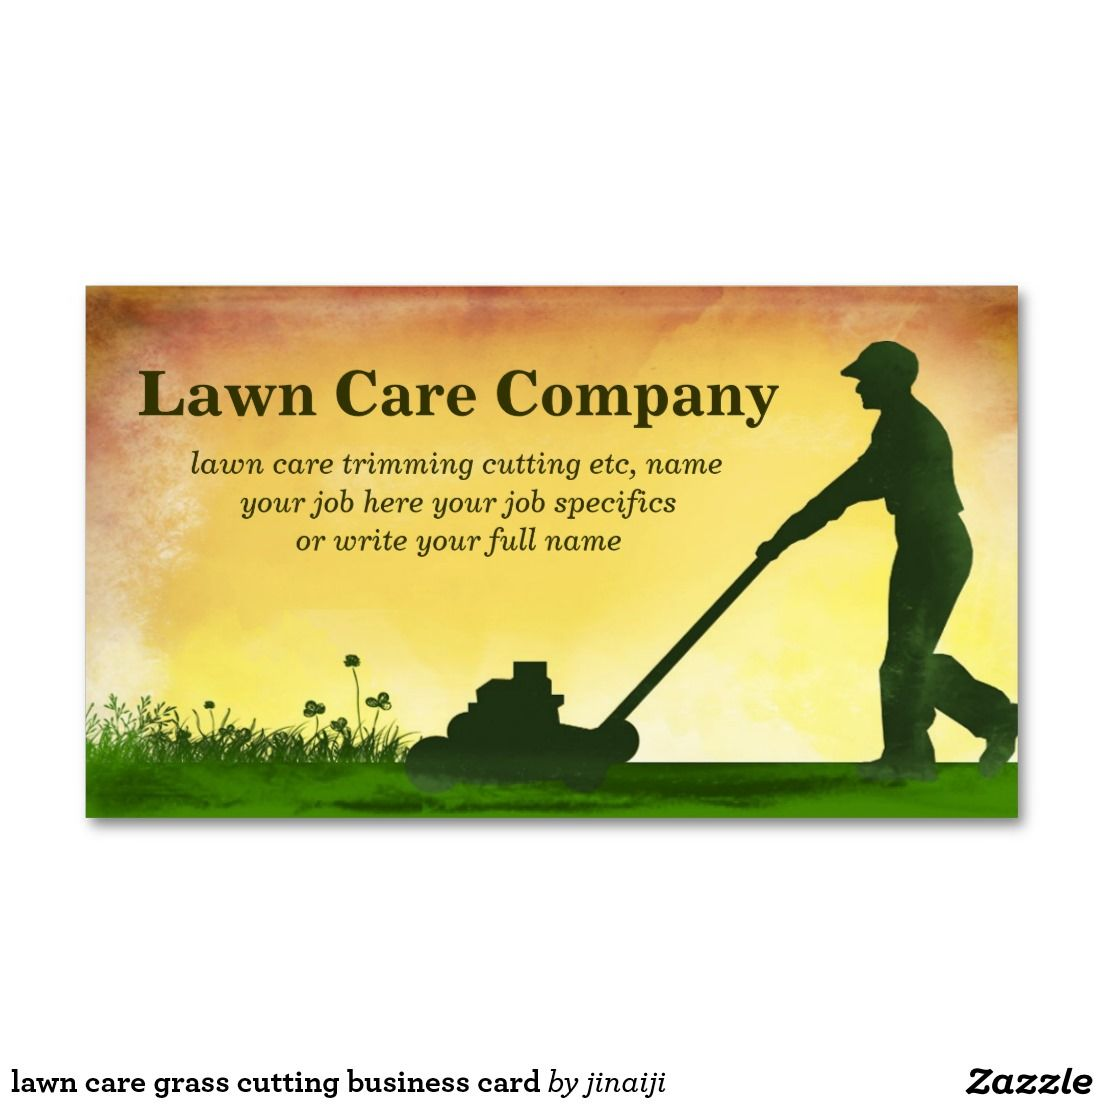 Lawn care grass cutting business card lawn care for Landscaping business